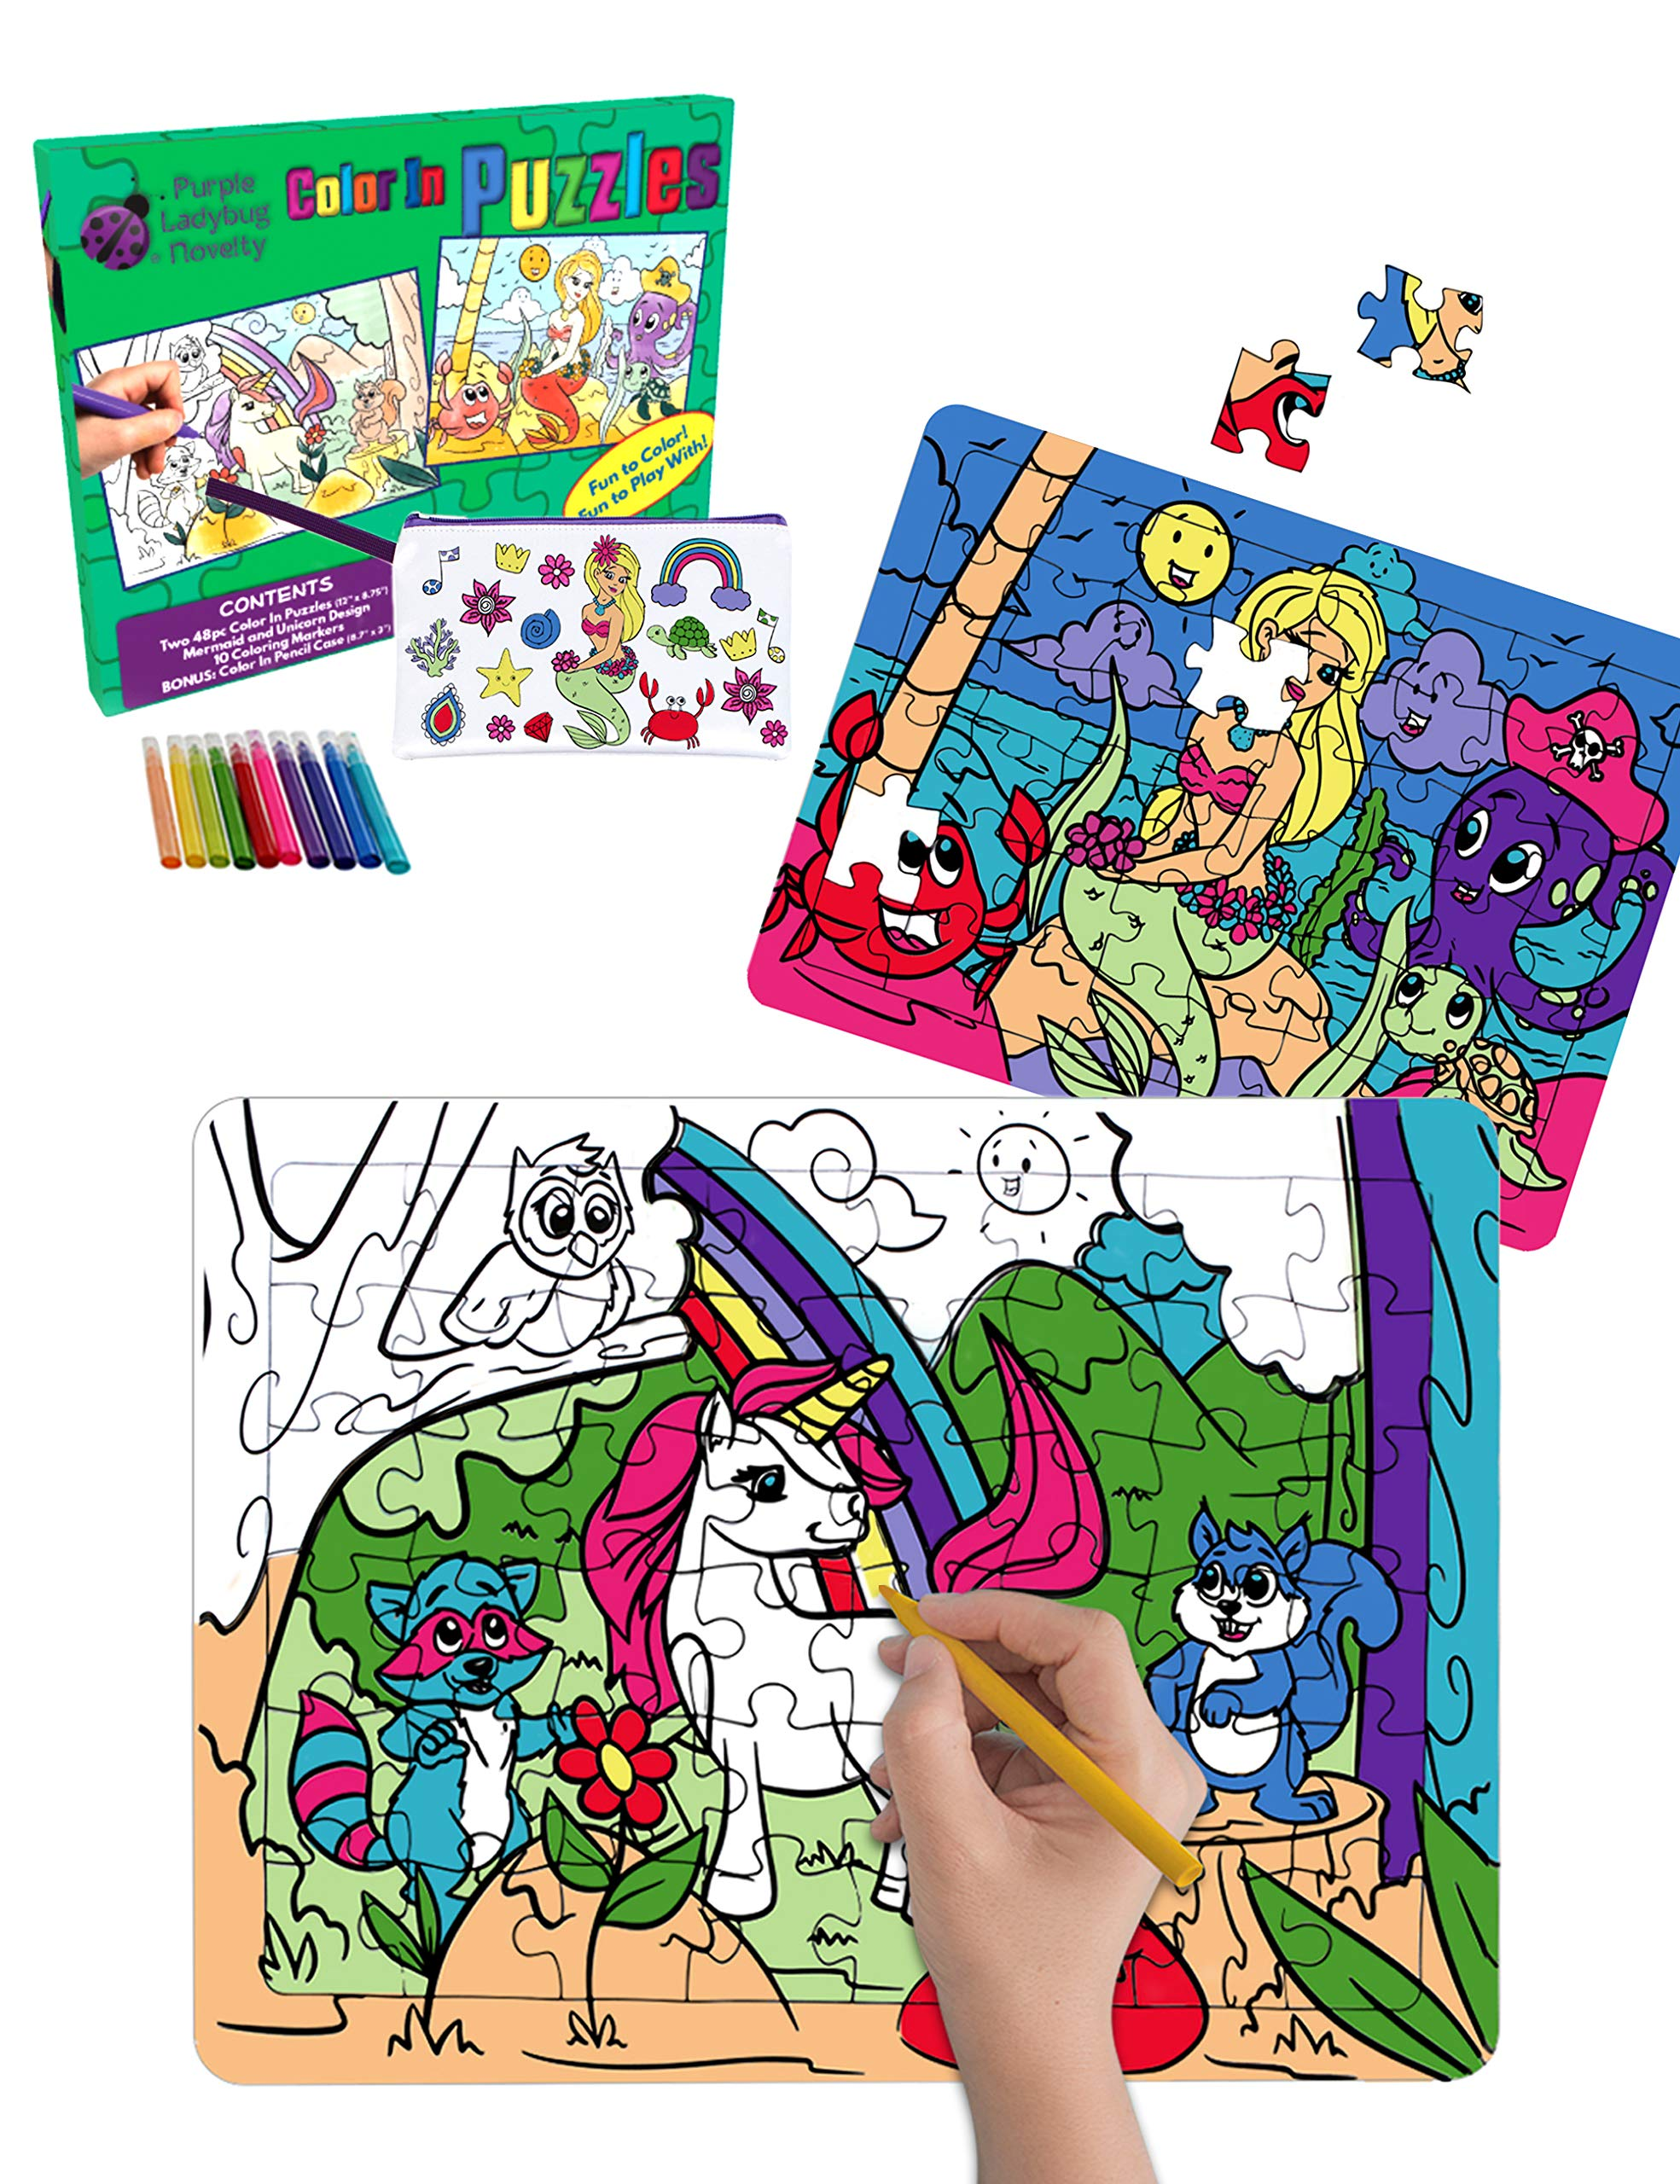 Purple Ladybug Creative Girls Puzzles with Unicorn & Mermaid Designs! 2 Color in Jigsaw Puzzles for Kids with 10 Coloring Markers + a Bonus Color in Pencil Case! Fun Art Toy Set, Great Gift for Girl!